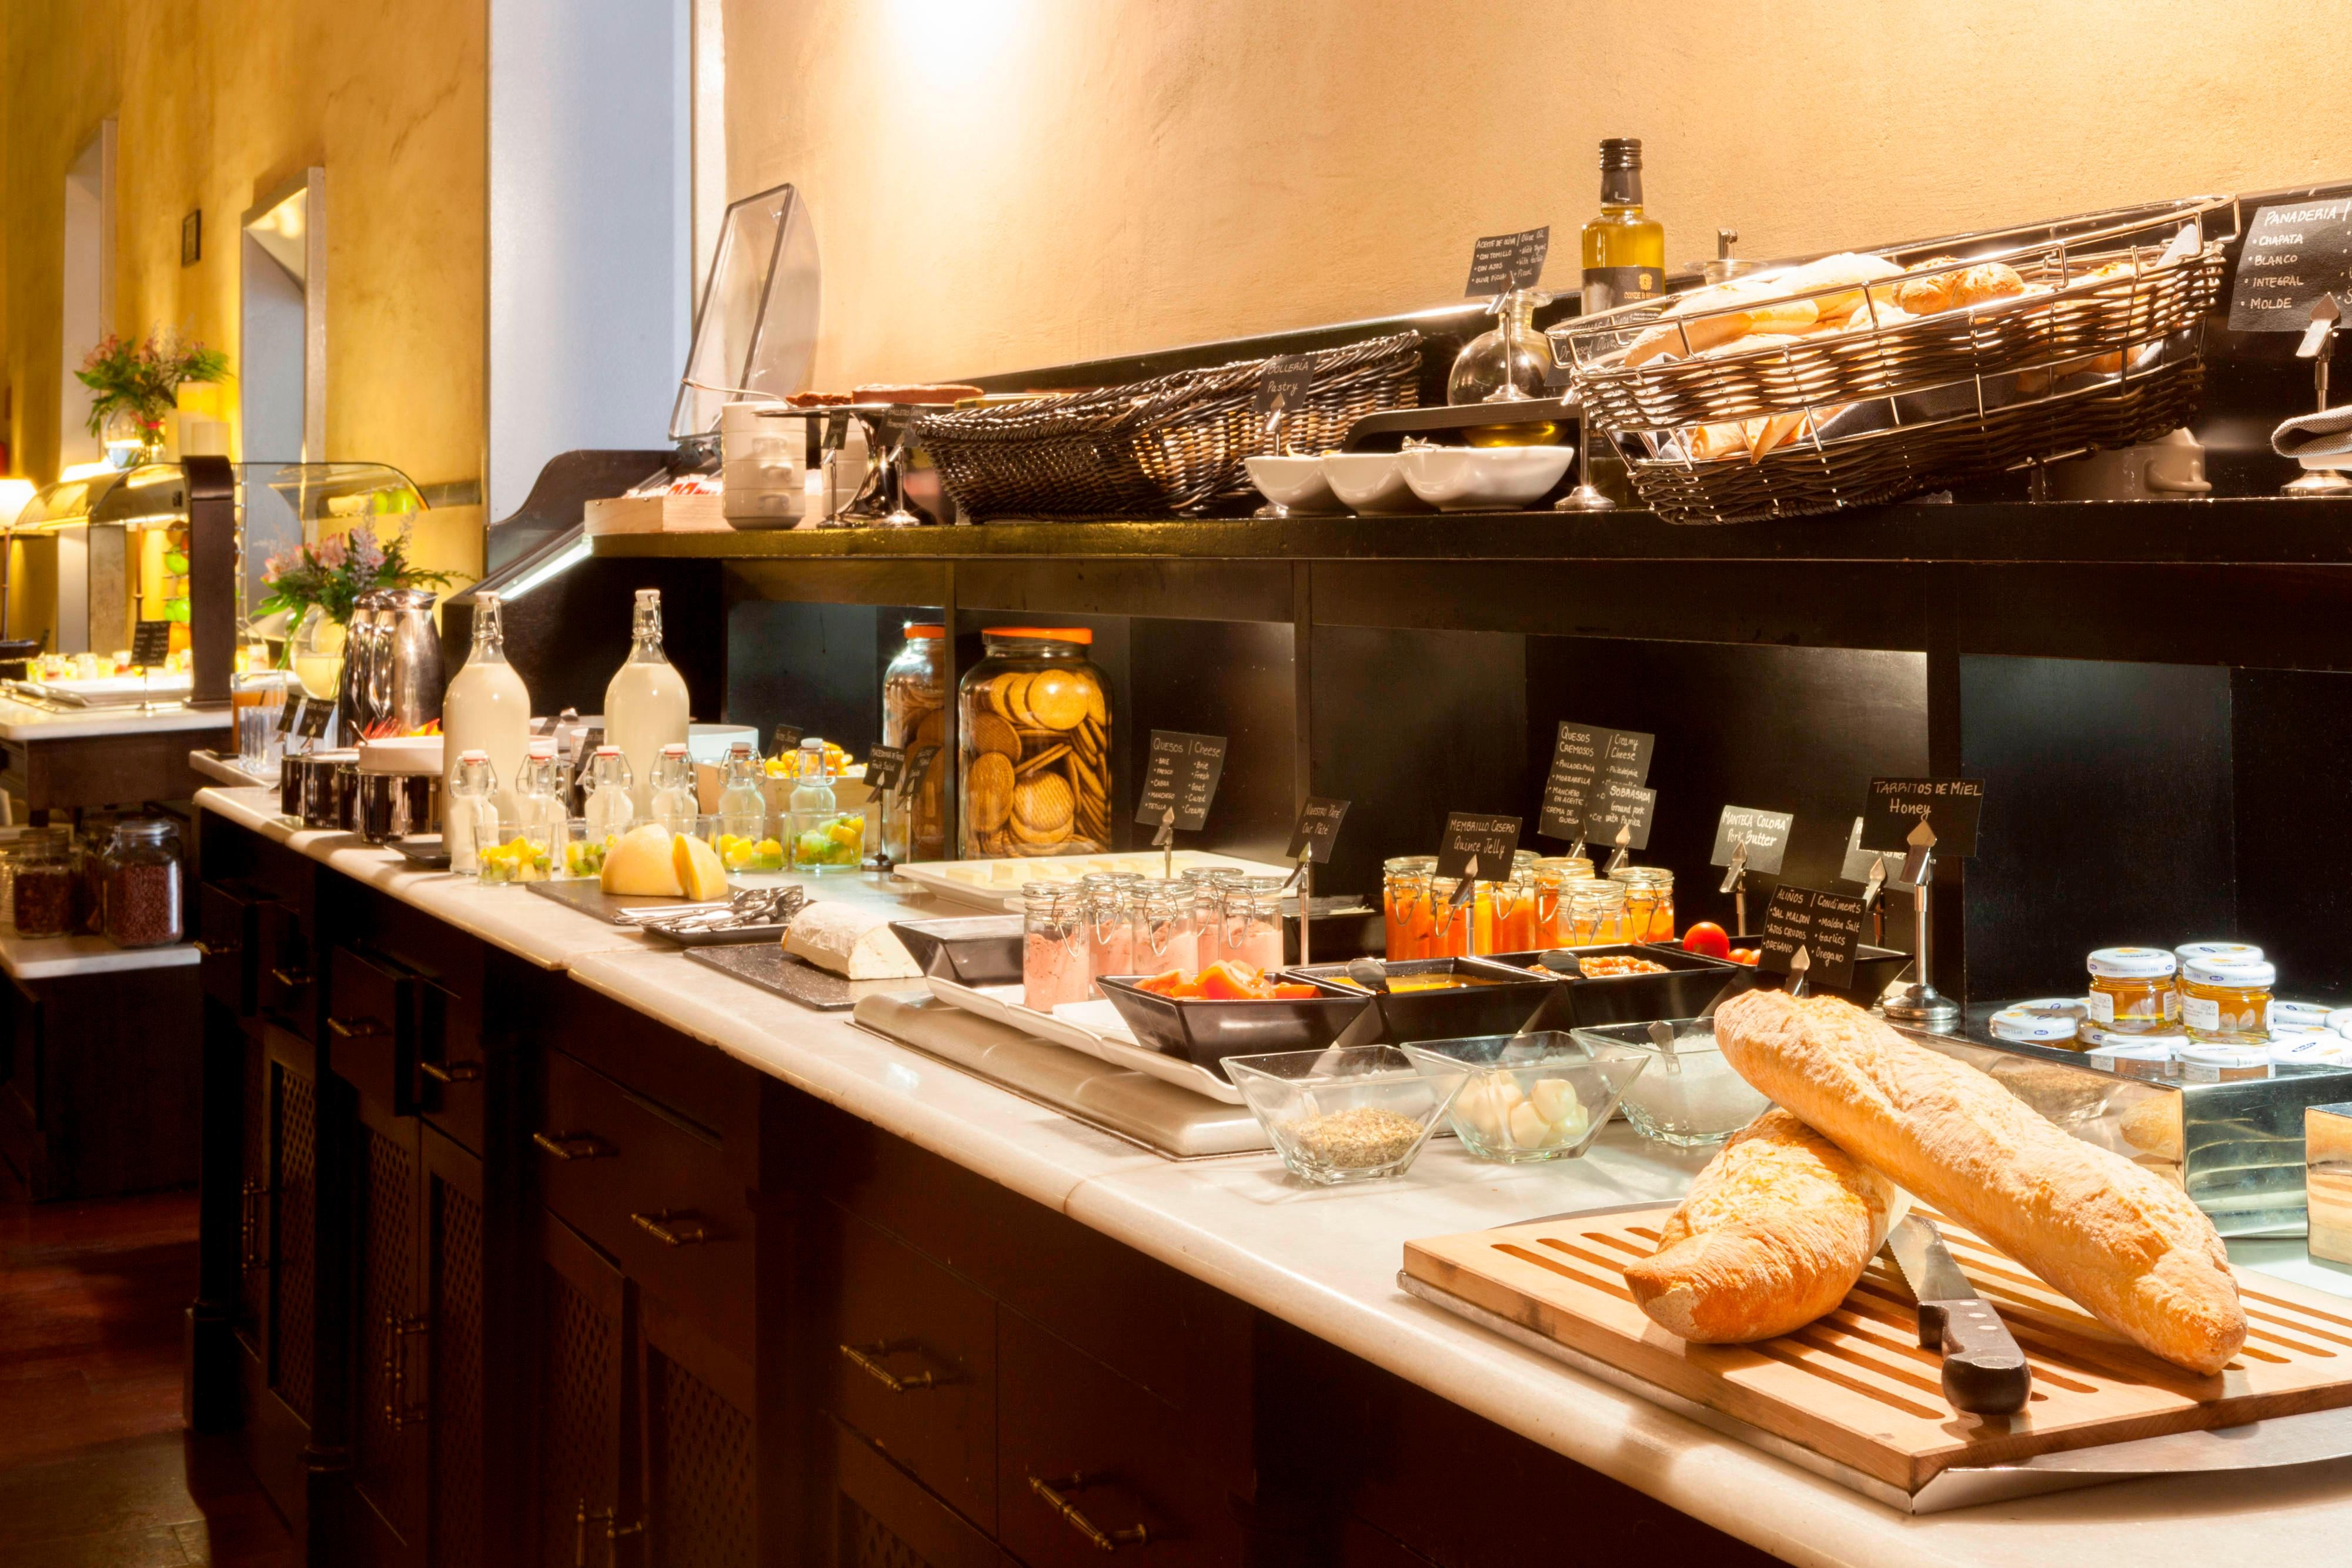 Breakfast buffet in Granada hotel